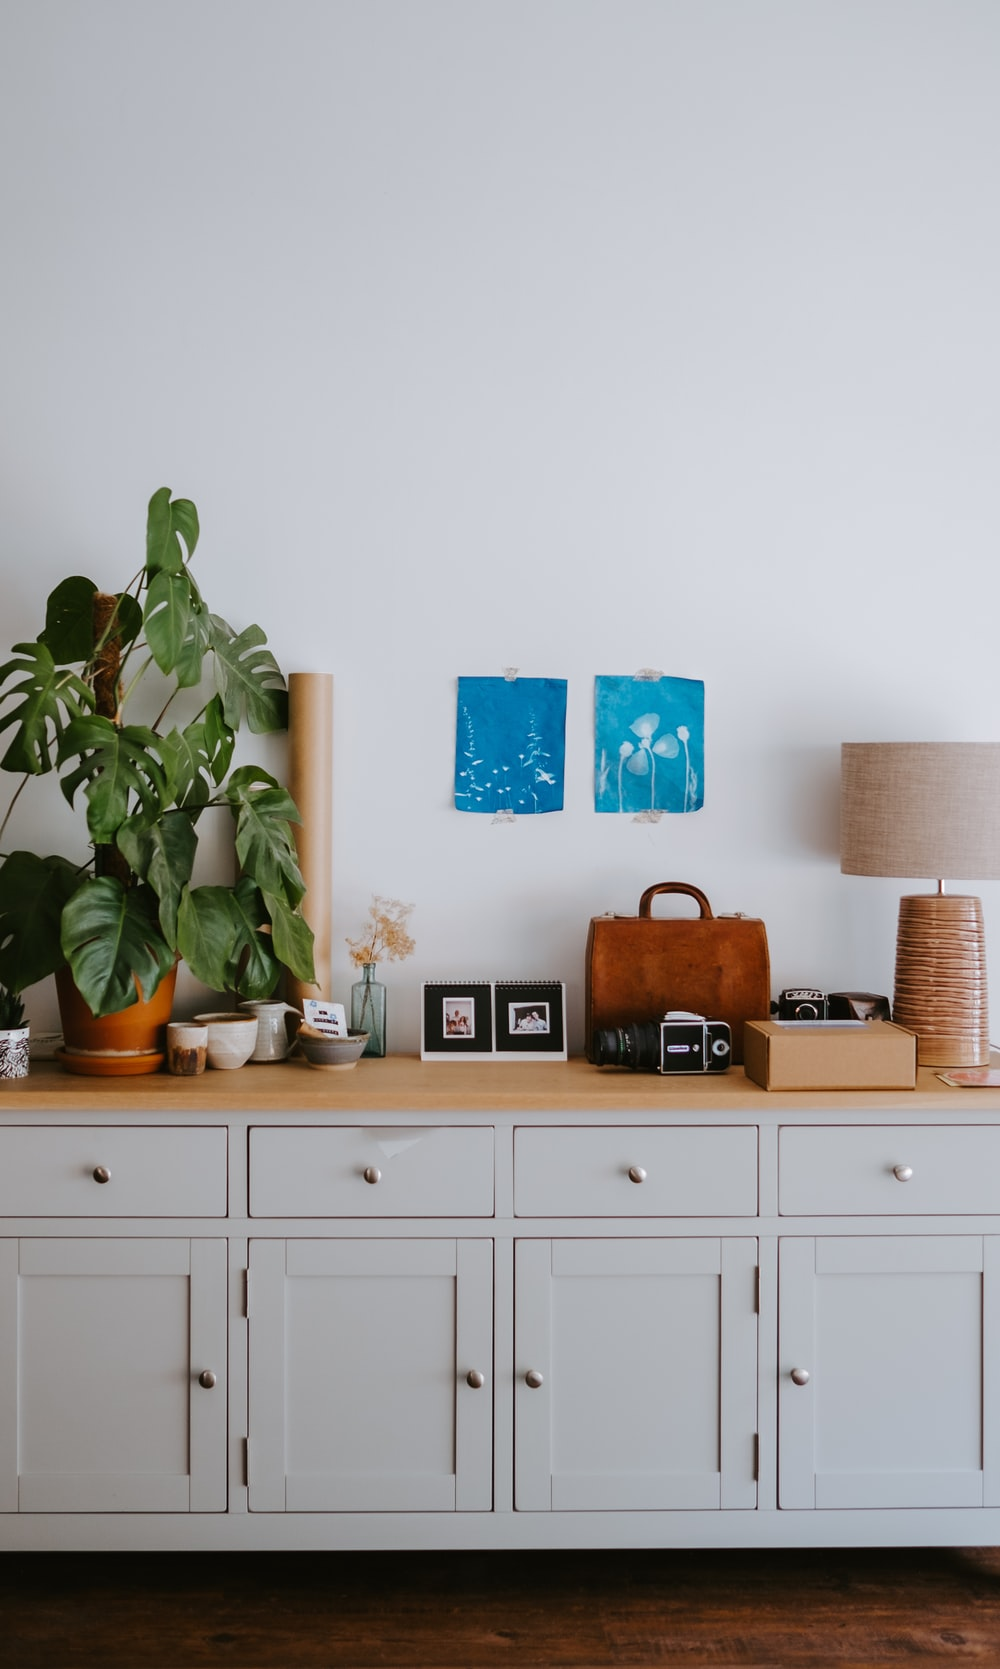 brown table lamp near green plants